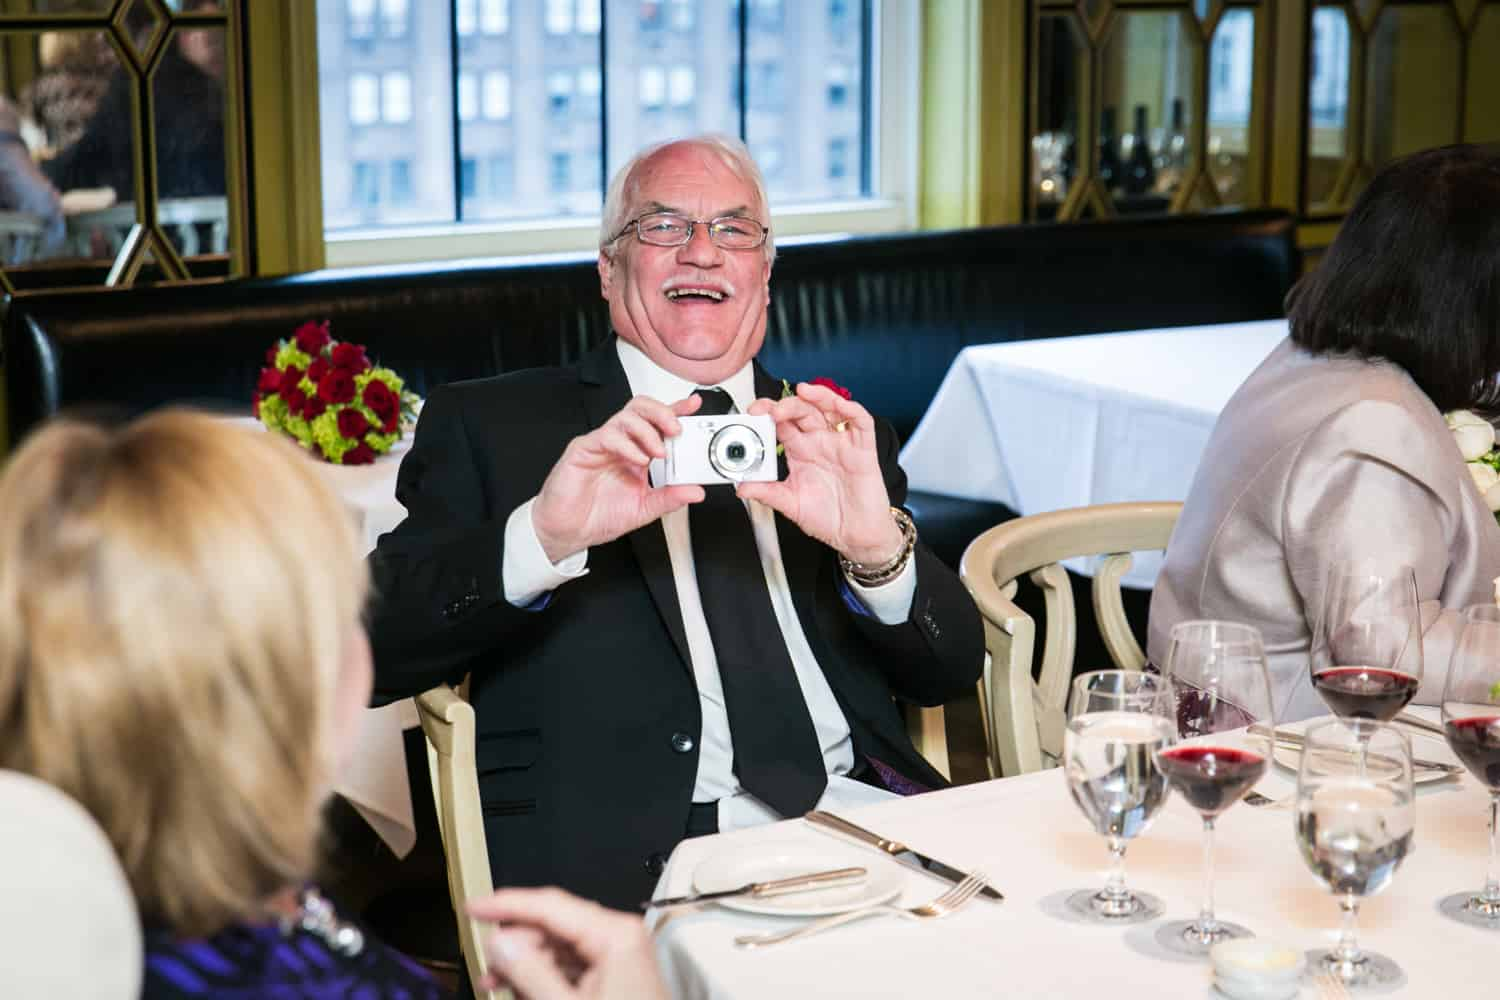 Older gentleman taking photo at a Bergdorf Goodman wedding reception